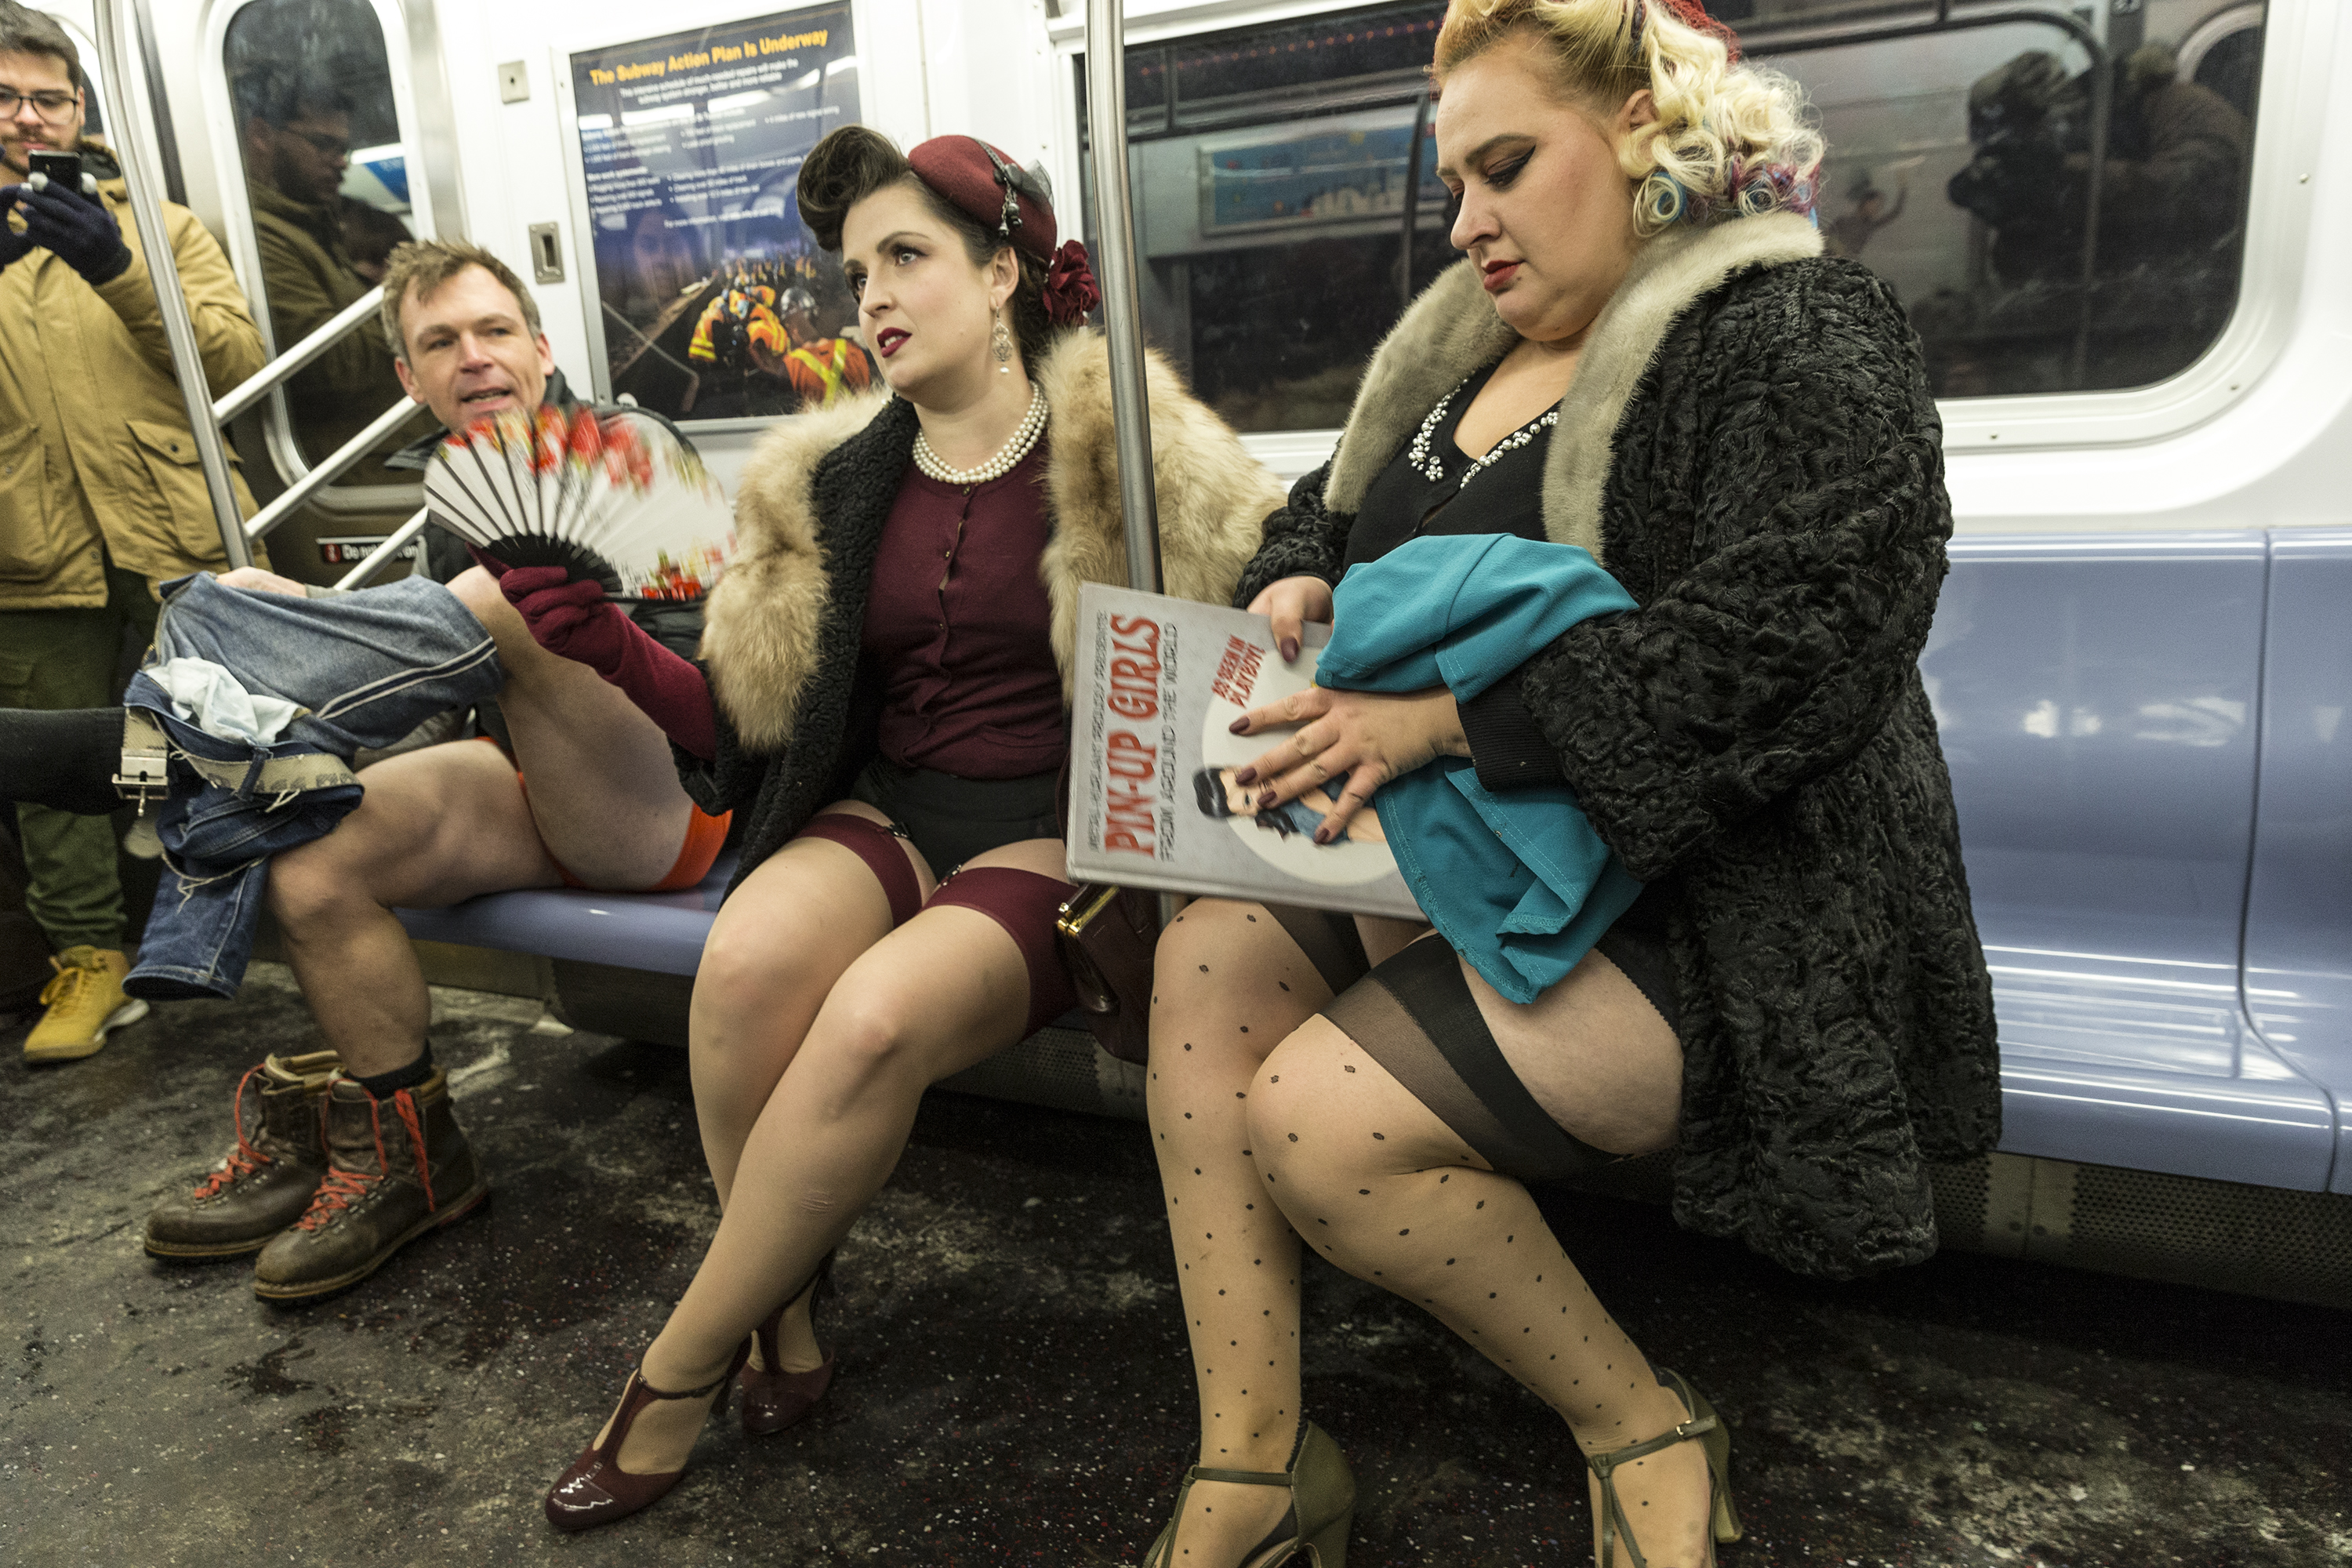 New Yorkers participate in 17th Annual No Pants Subway Ride